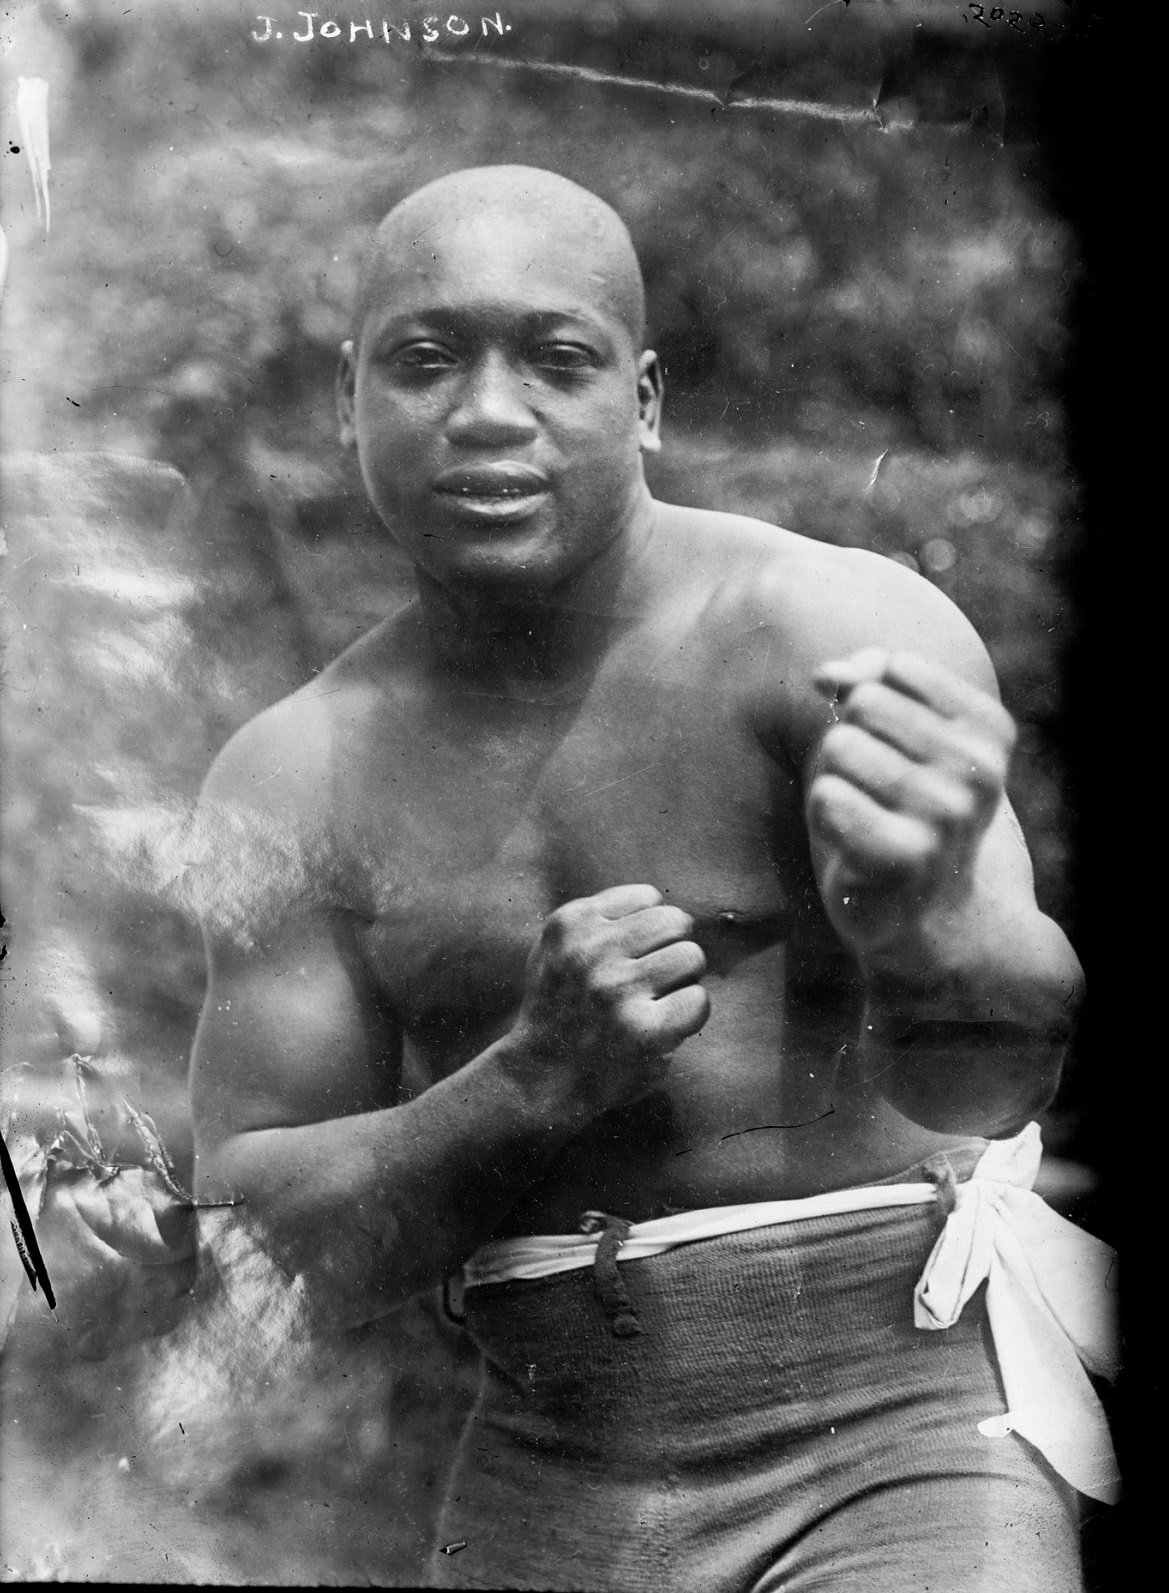 Jack Johnson - U.S President Donald Trump has today pardoned Jack Johnson, the first black heavyweight champion, who was wrongly convicted in 1913 of transporting a white woman across State lines.